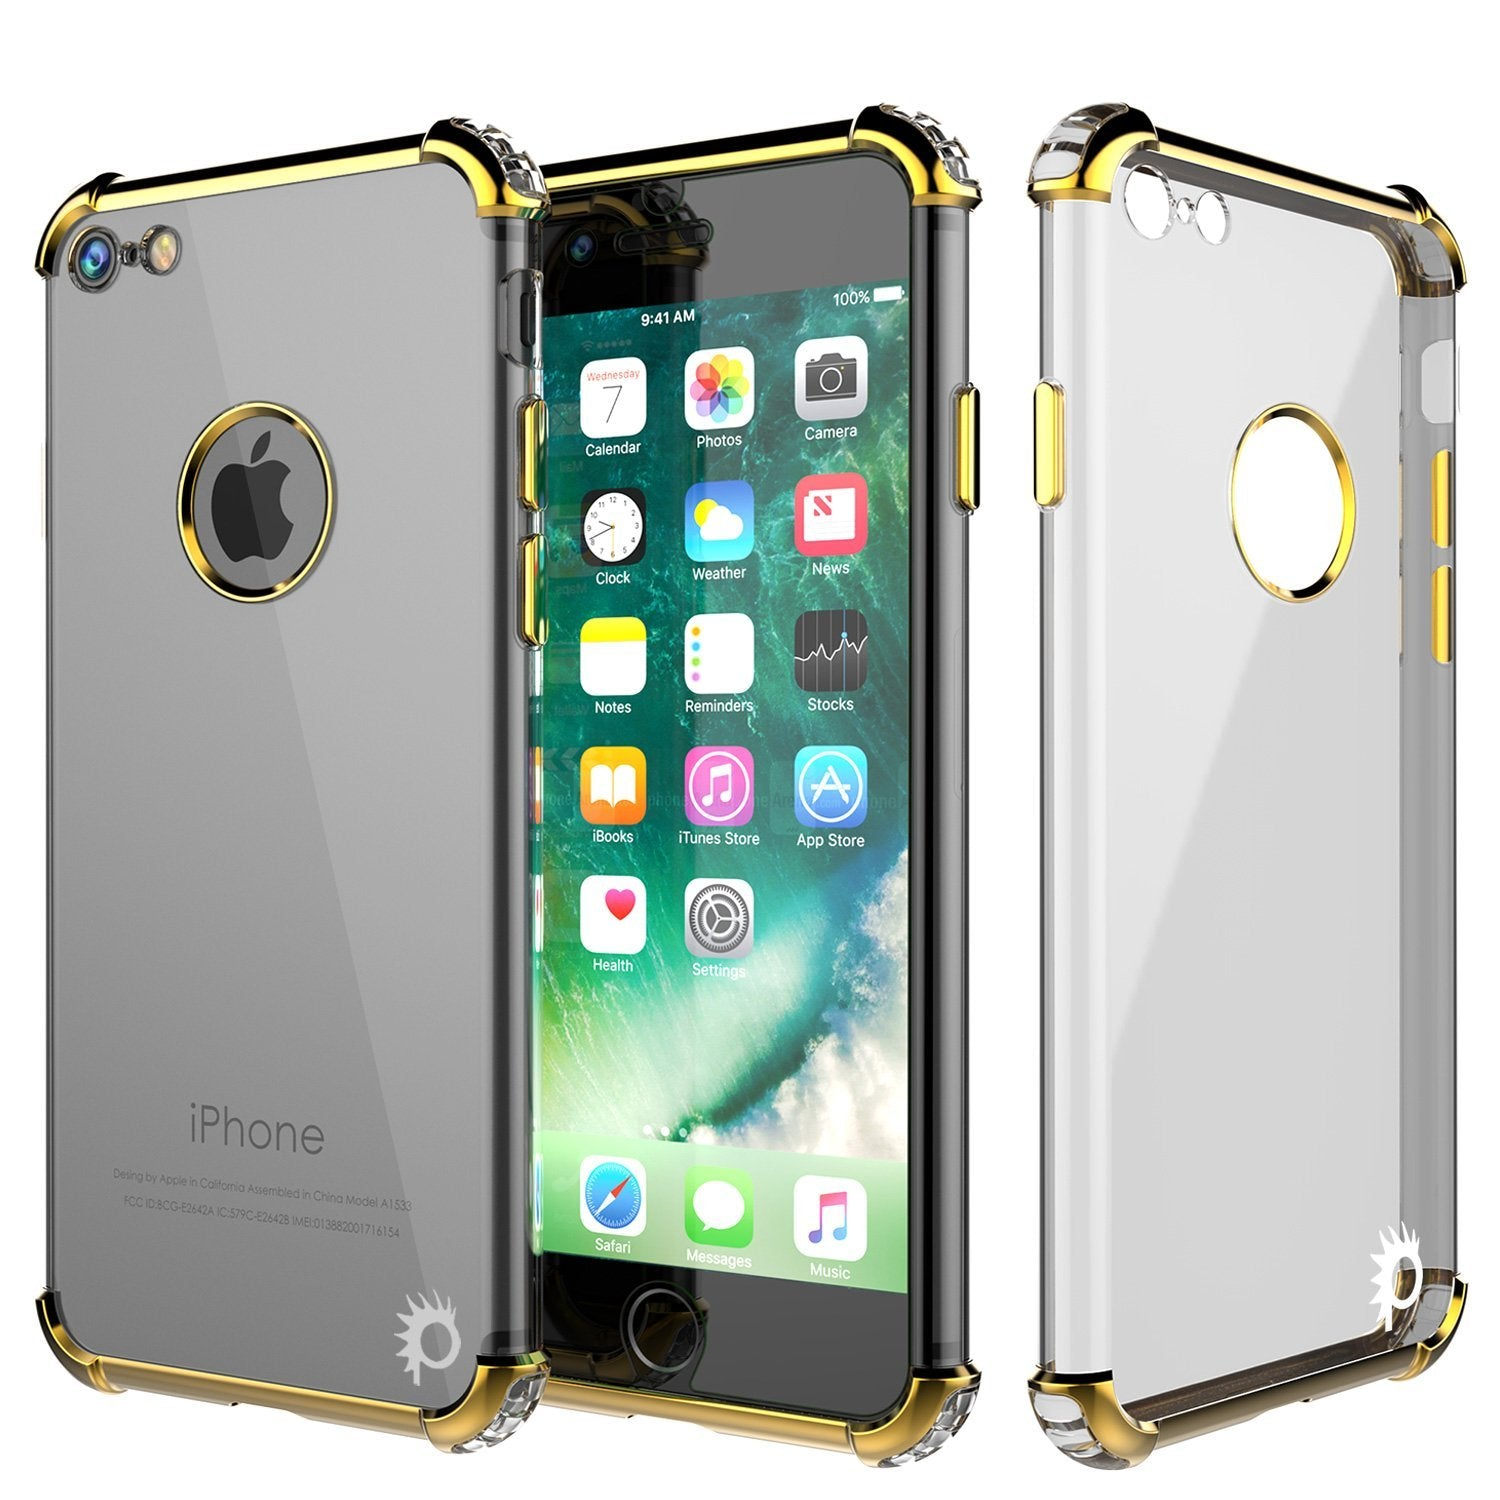 "iPhone SE (4.7"") Case, Punkcase [BLAZE SERIES] Protective Cover W/ PunkShield Screen Protector [Shockproof] [Slim Fit] for Apple iPhone [Gold]"